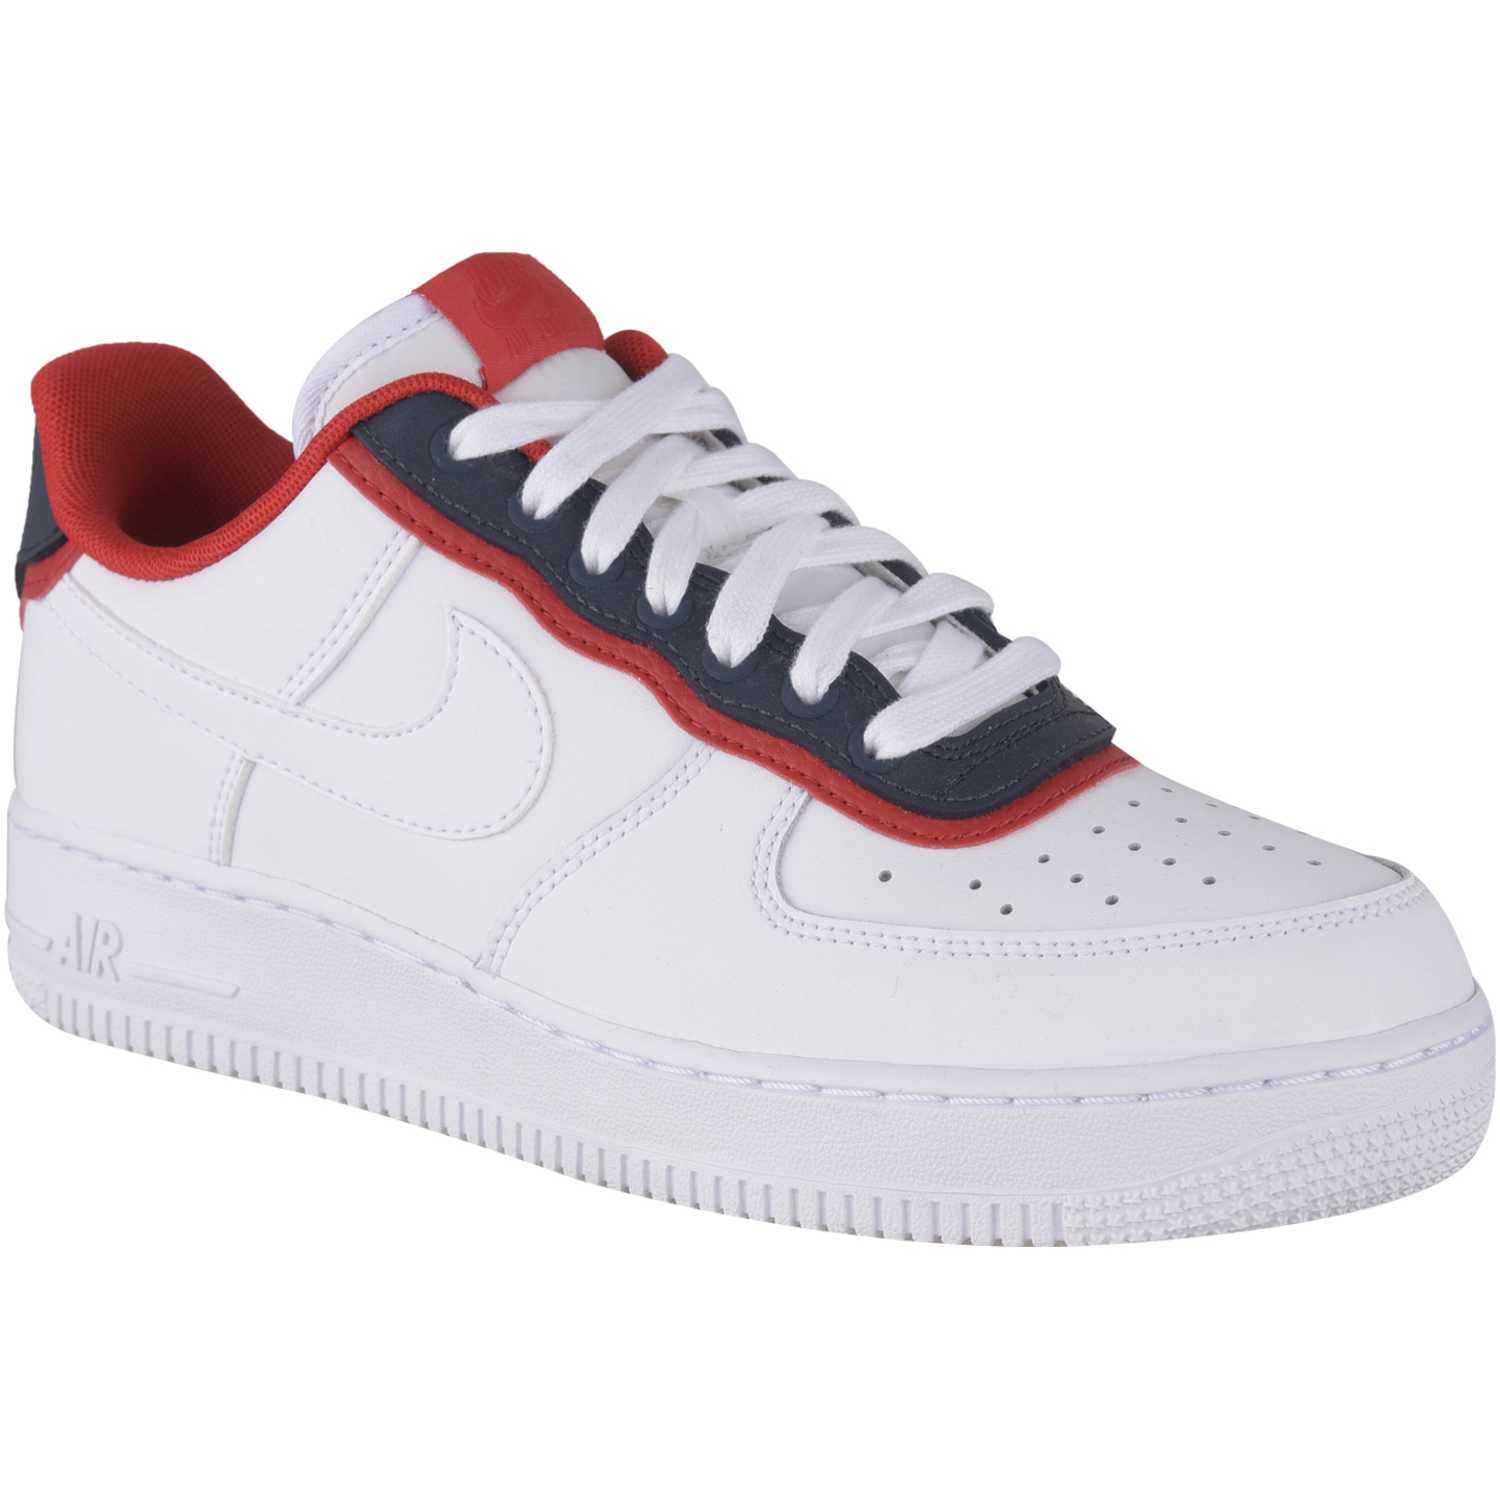 Casual de Hombre Nike Blanco rojo air force 1 '07 lv8 1